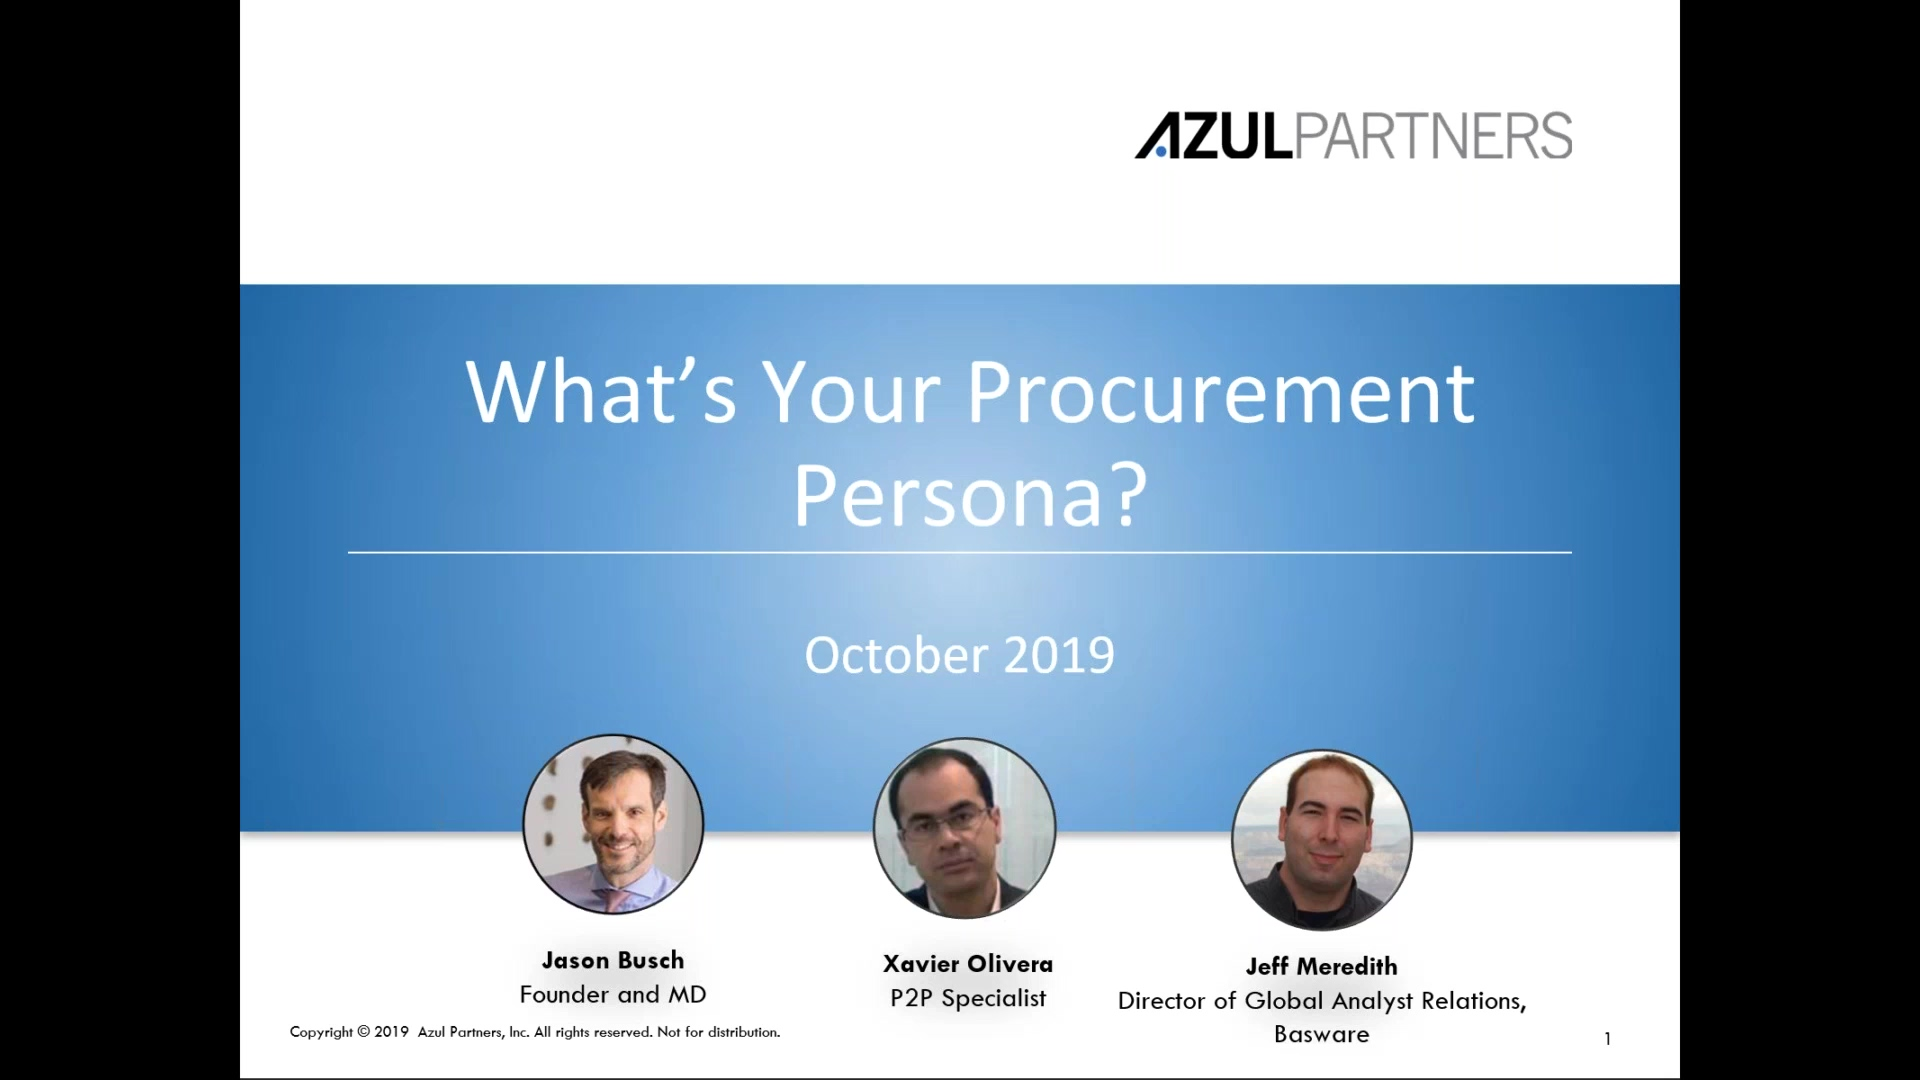 Whats Your Procurement Persona_ How to Choose P2P Technology Based on Your Needs